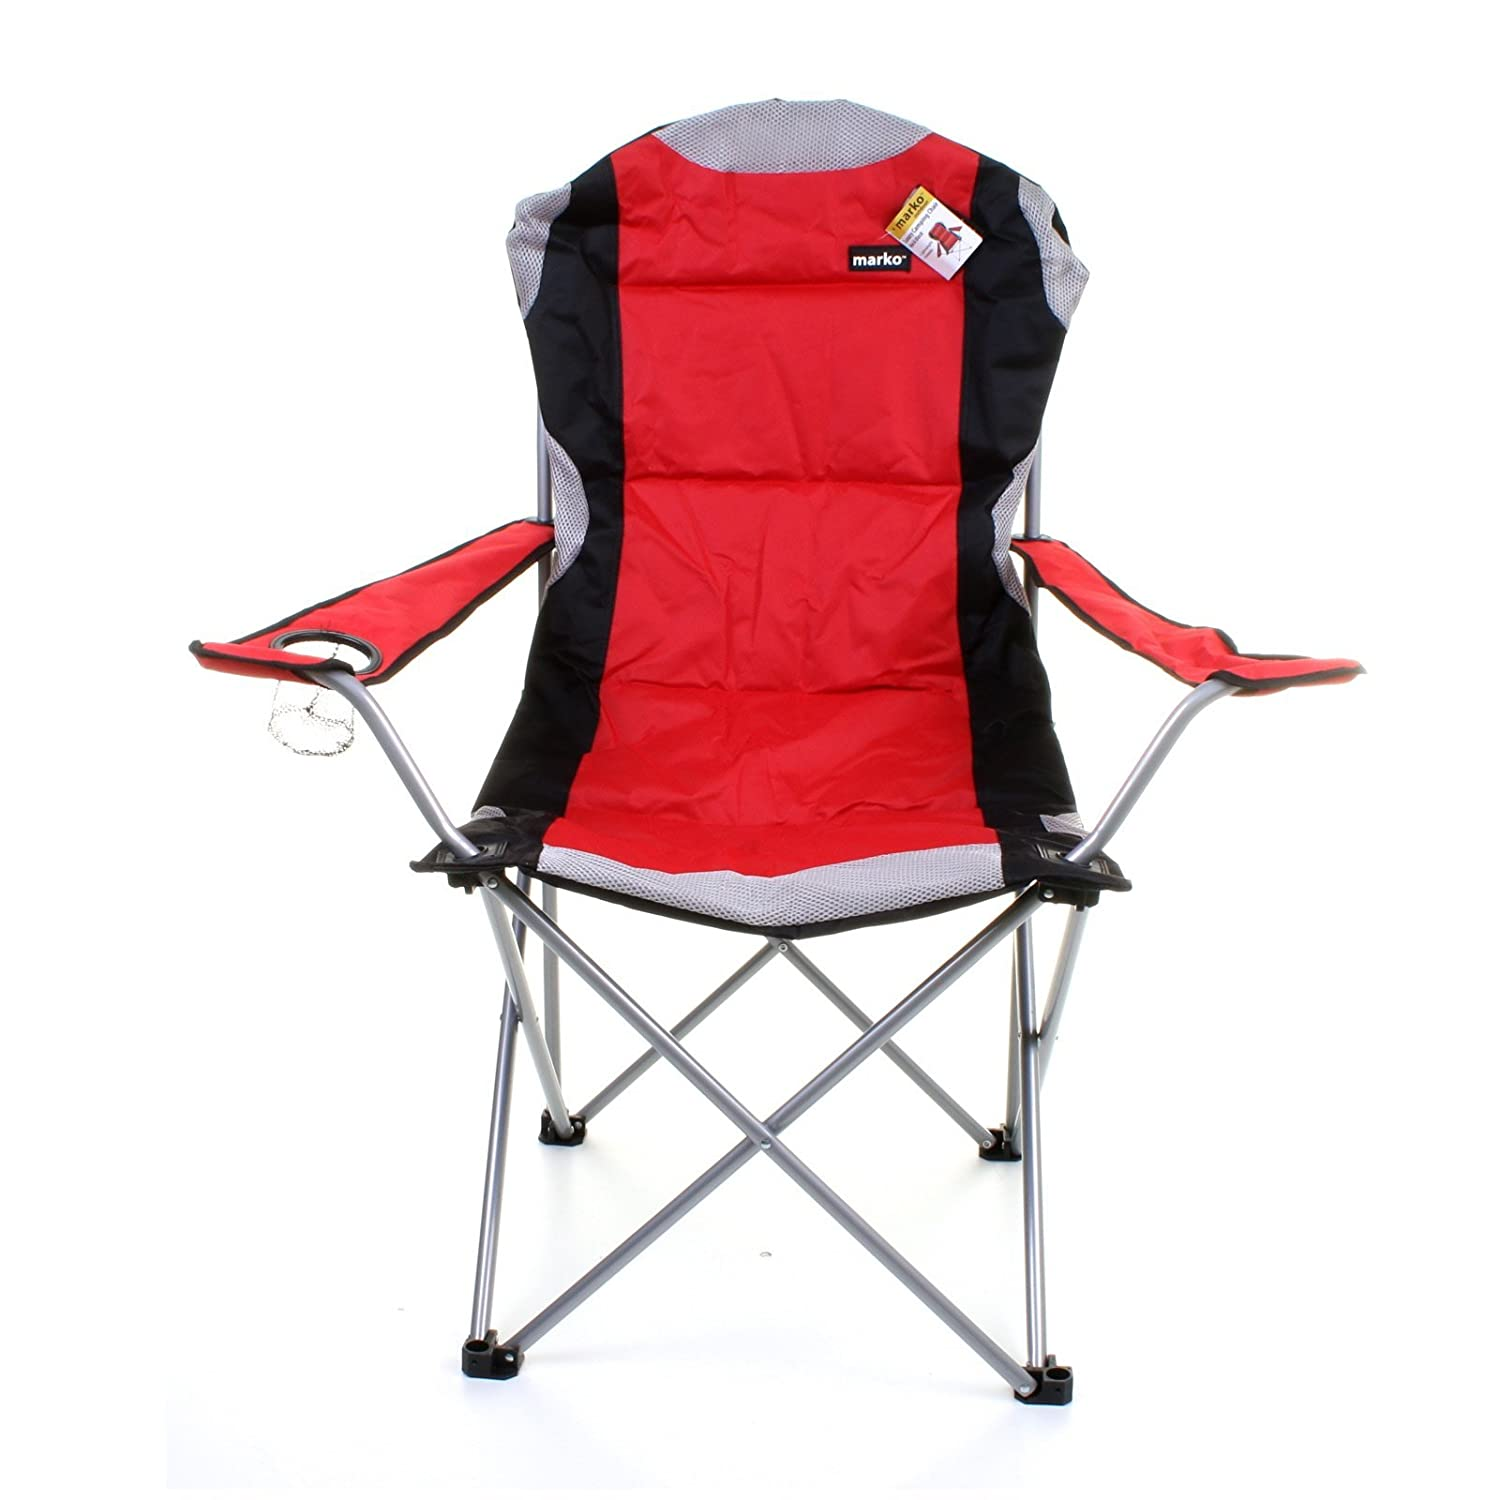 Marko Outdoor Red & Grey Heavy Duty Deluxe Padded Folding steel